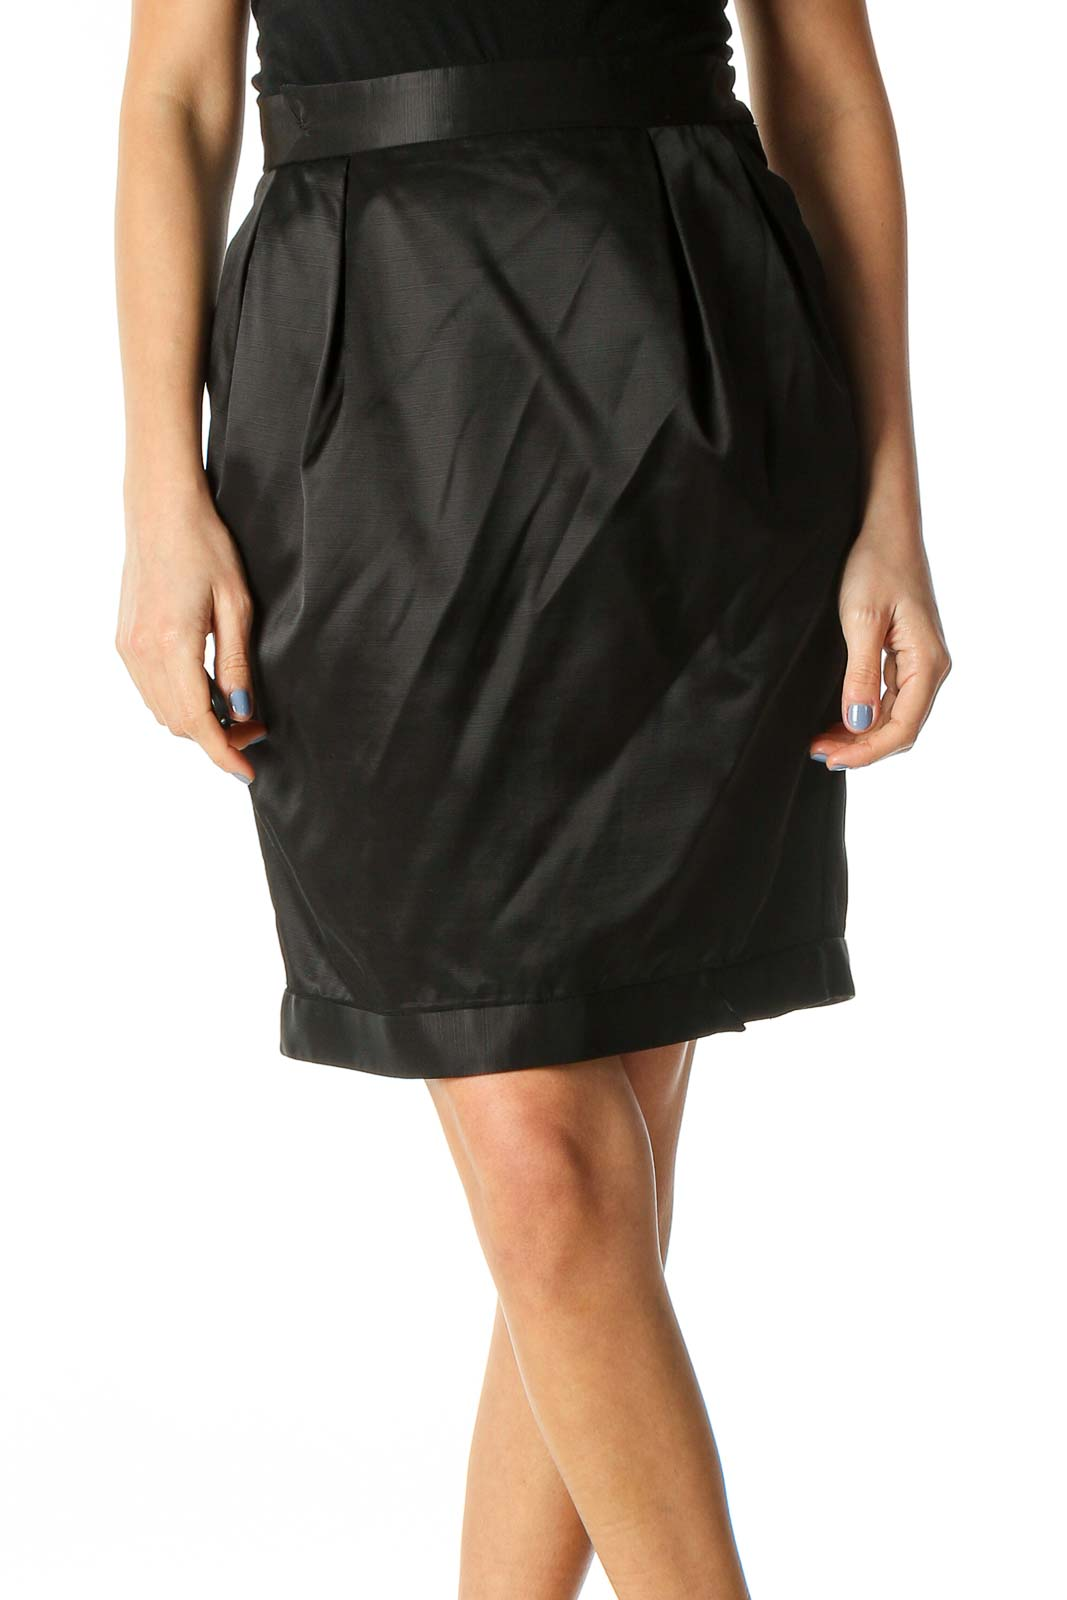 Black Pleated Pocketed High-Waisted Skirt Front